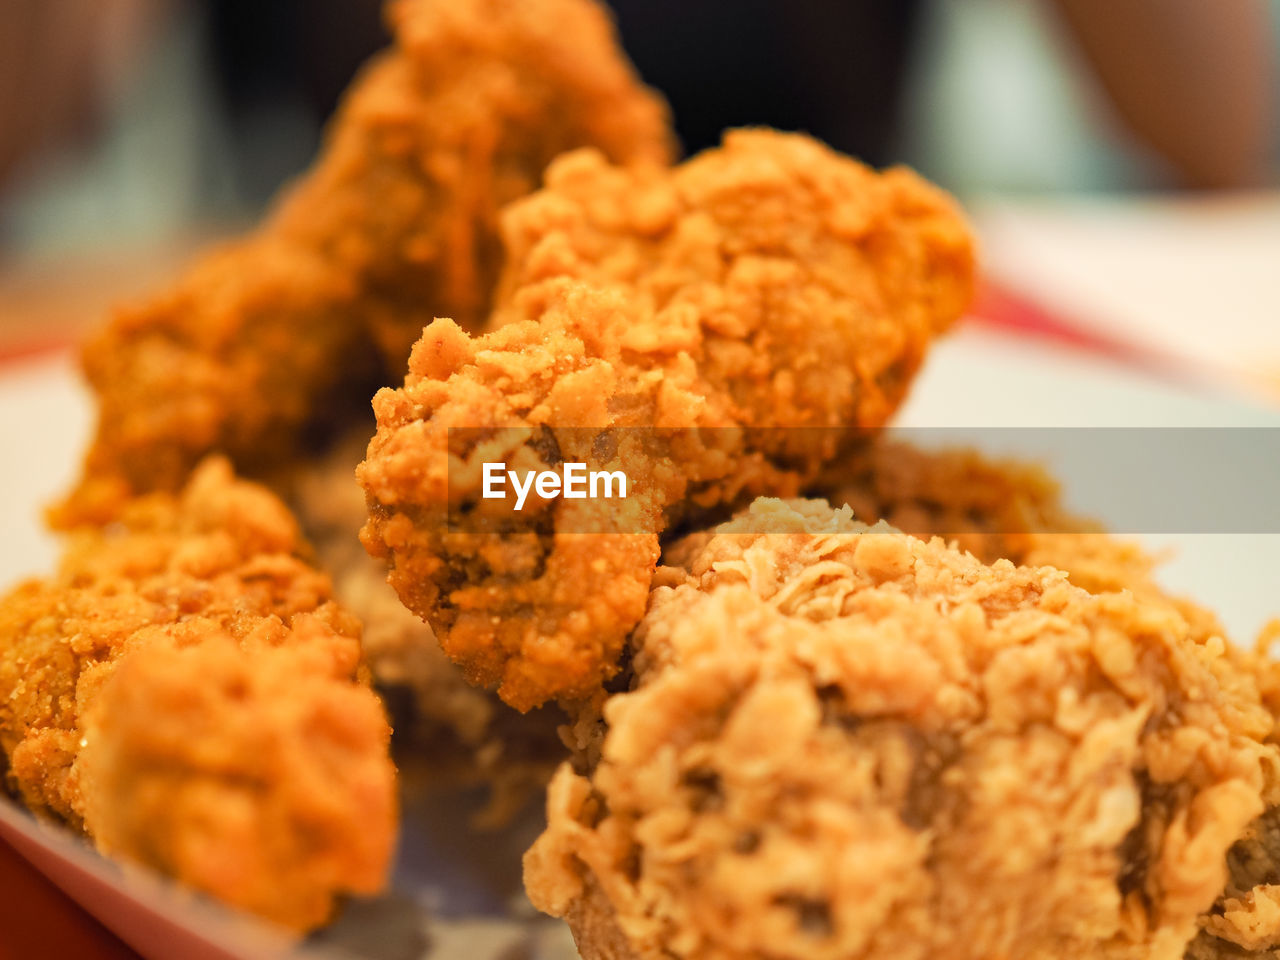 Close-Up Of Fried Chicken In Plate